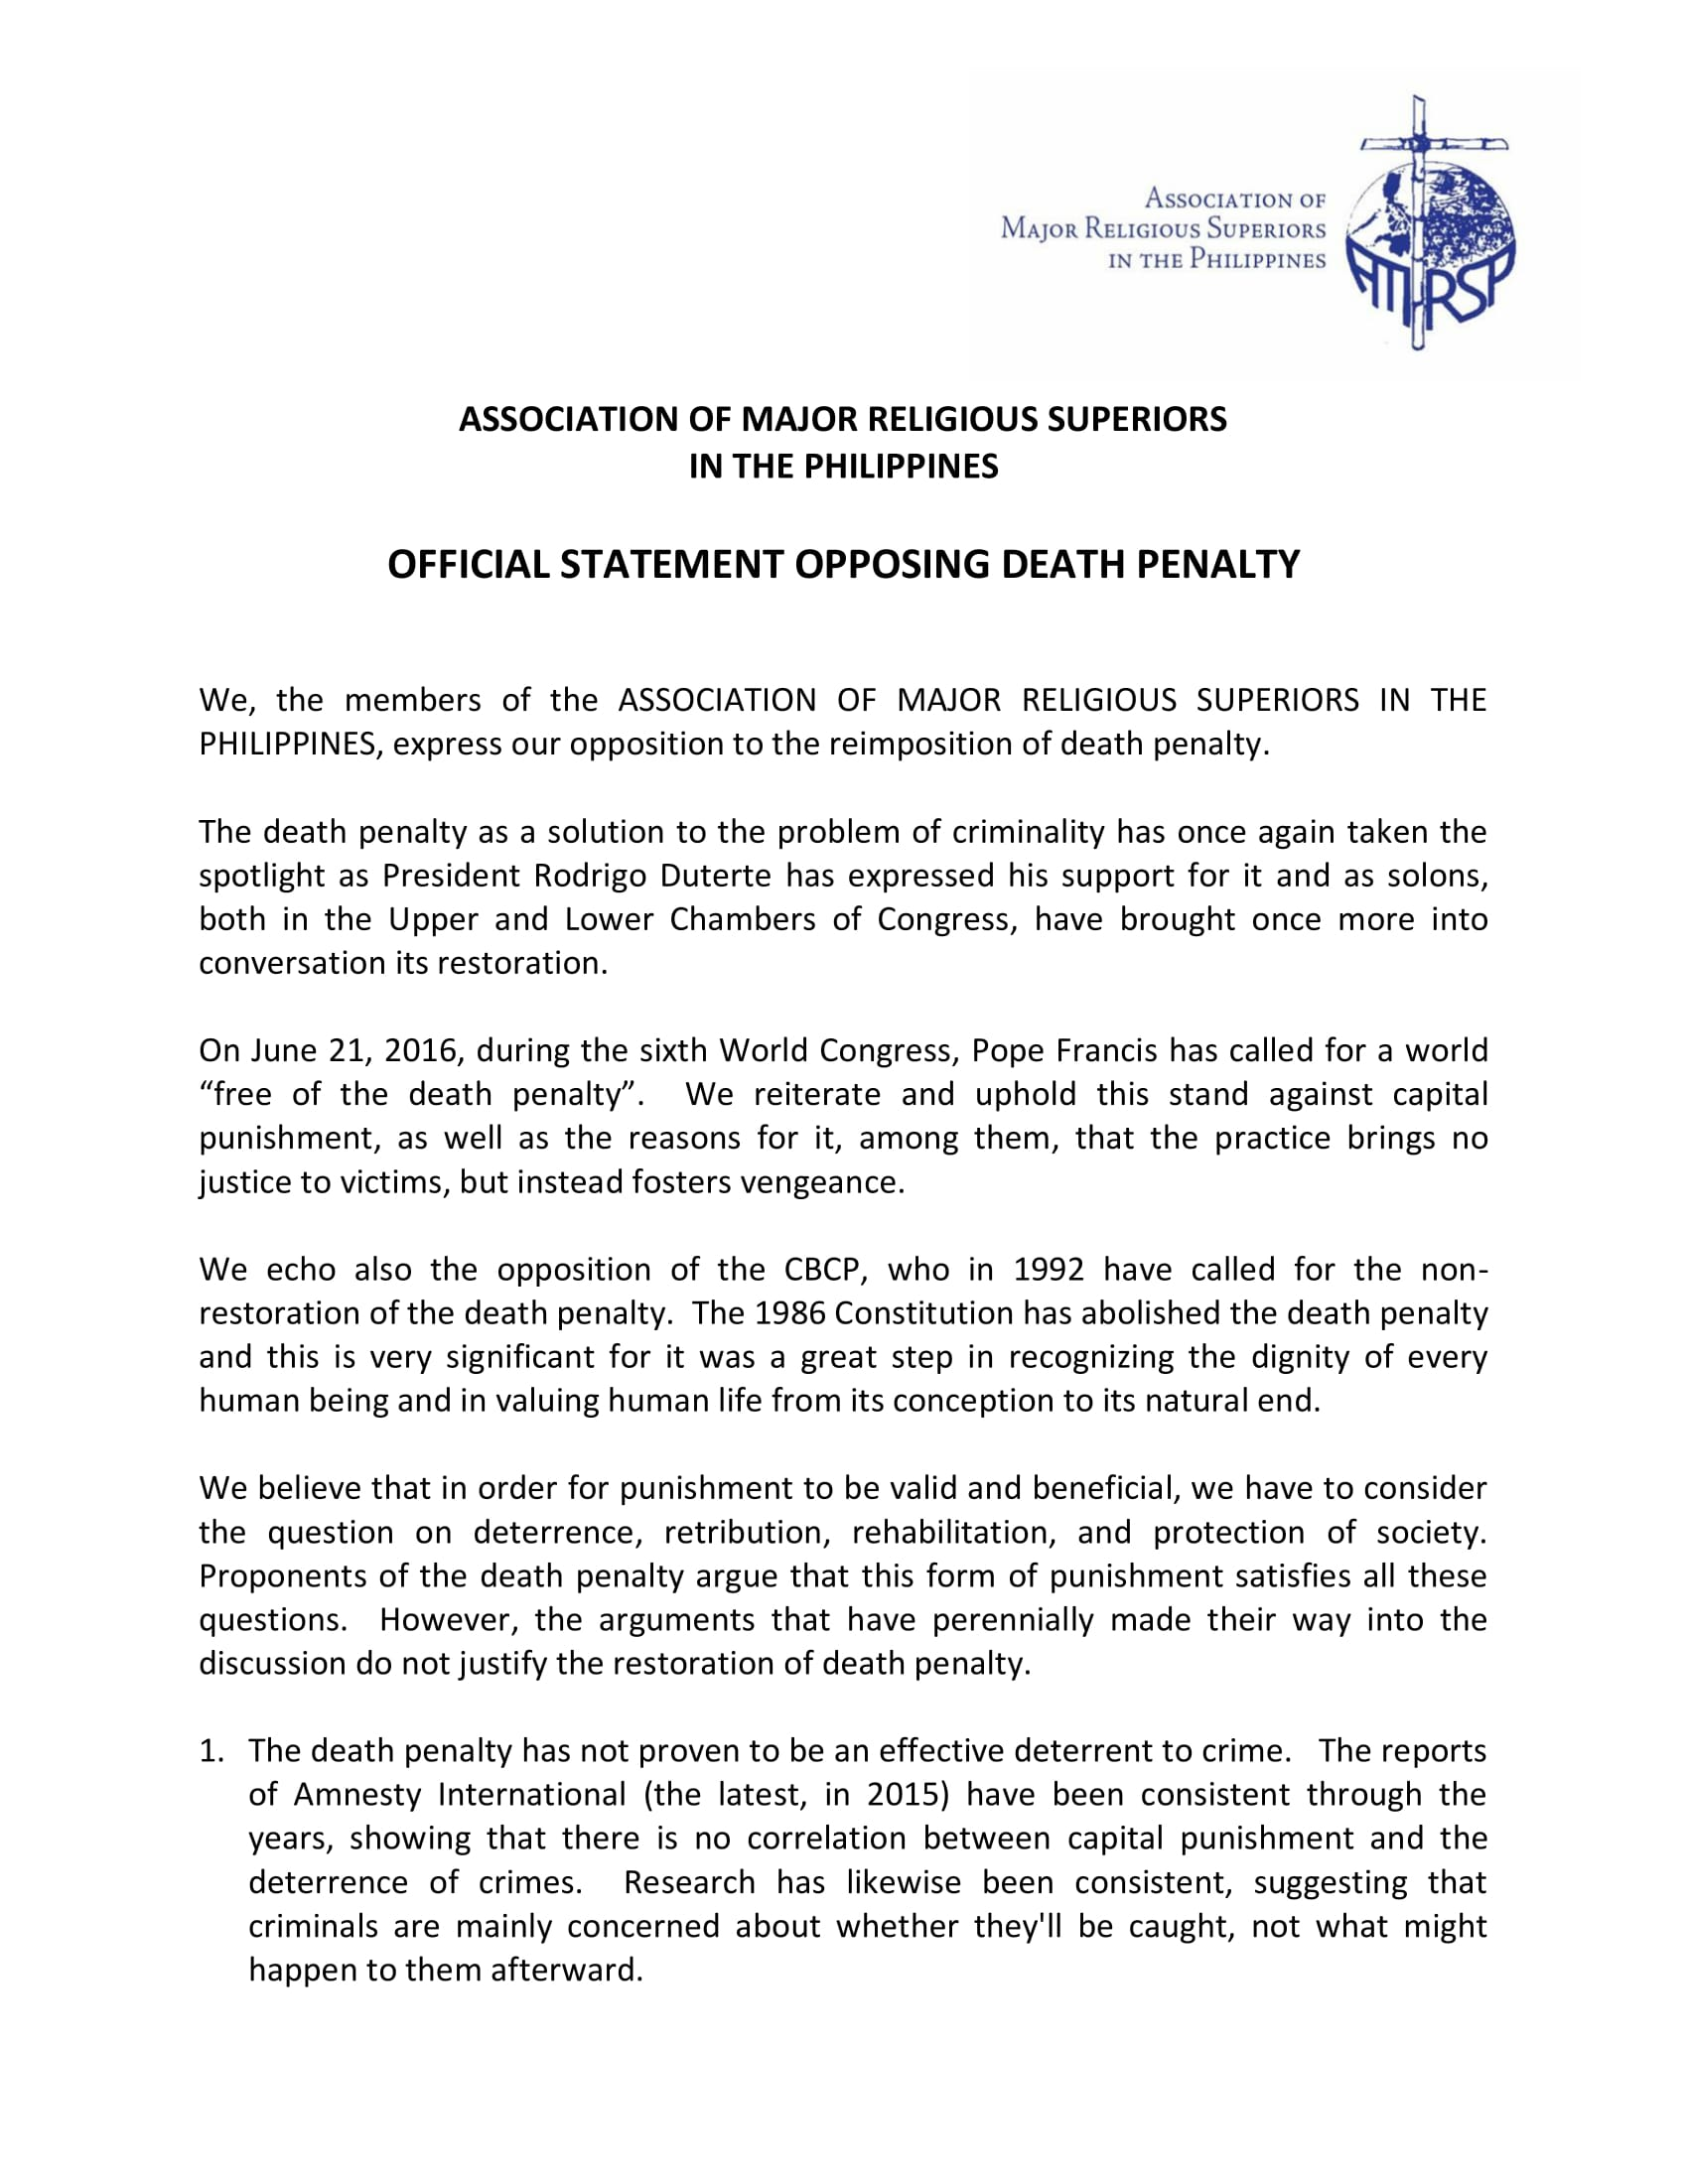 015 Amrsp Message Statement Against Death Penalty Essay On Beautiful Should Be Abolished Or Not In Hindi Full